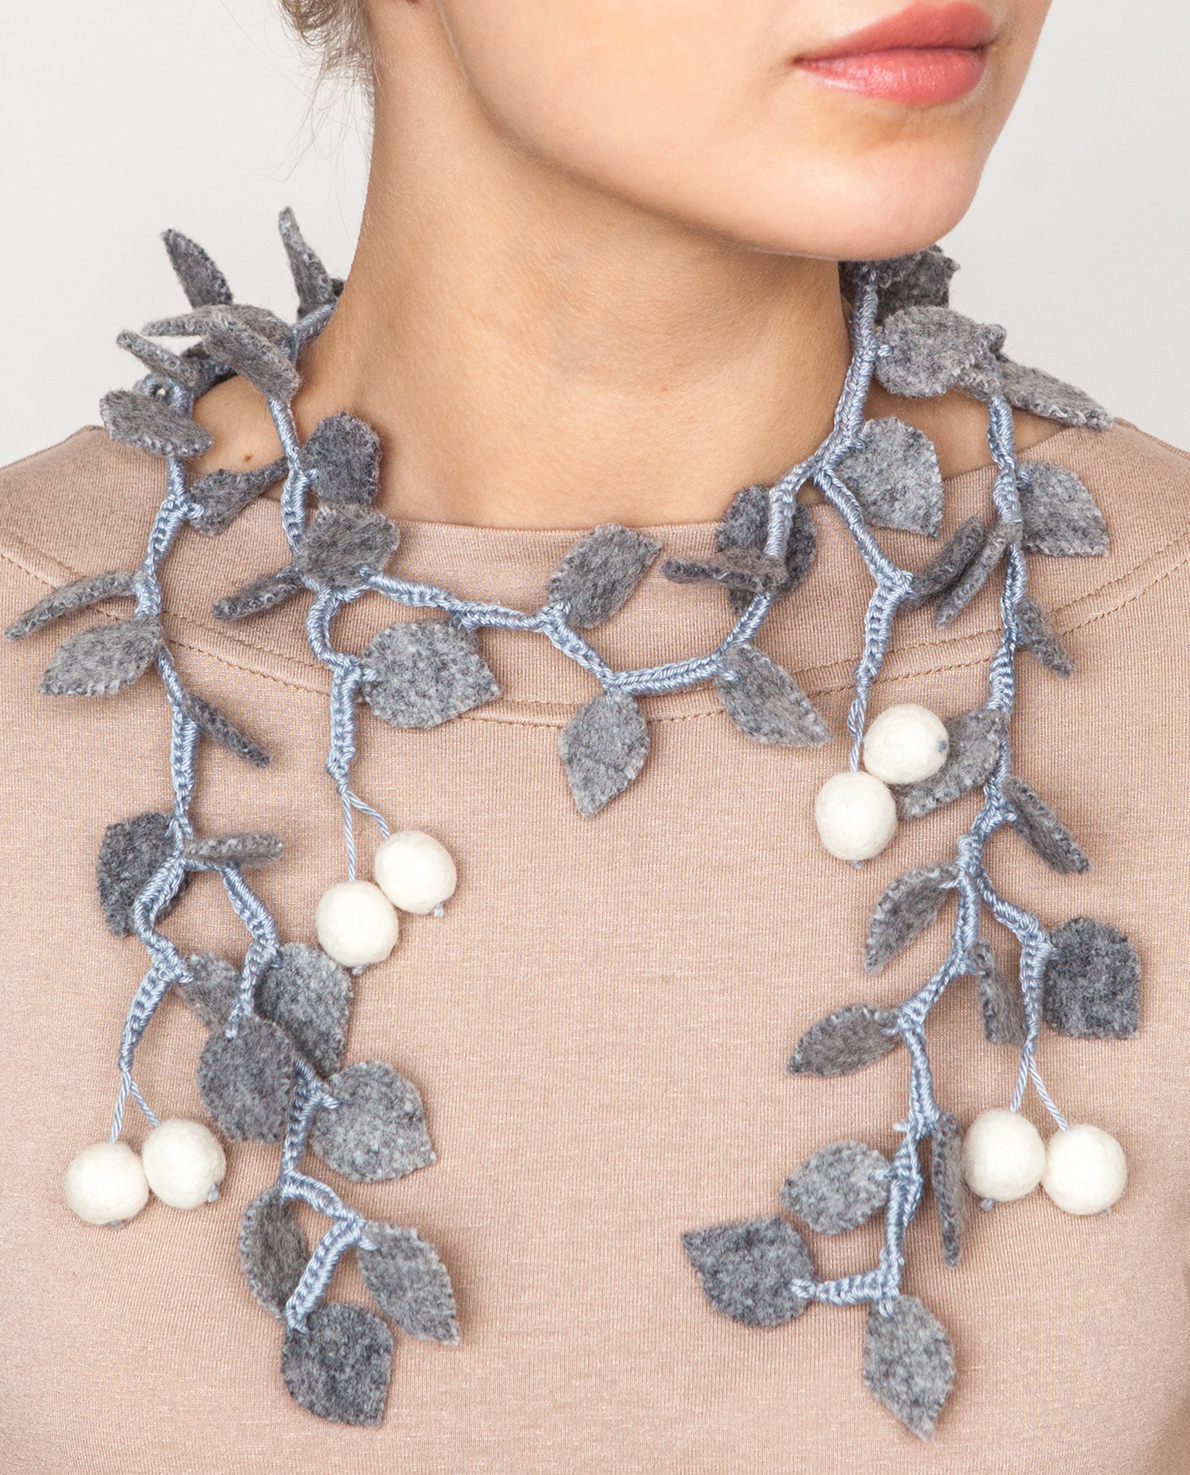 Necklace with white cherries